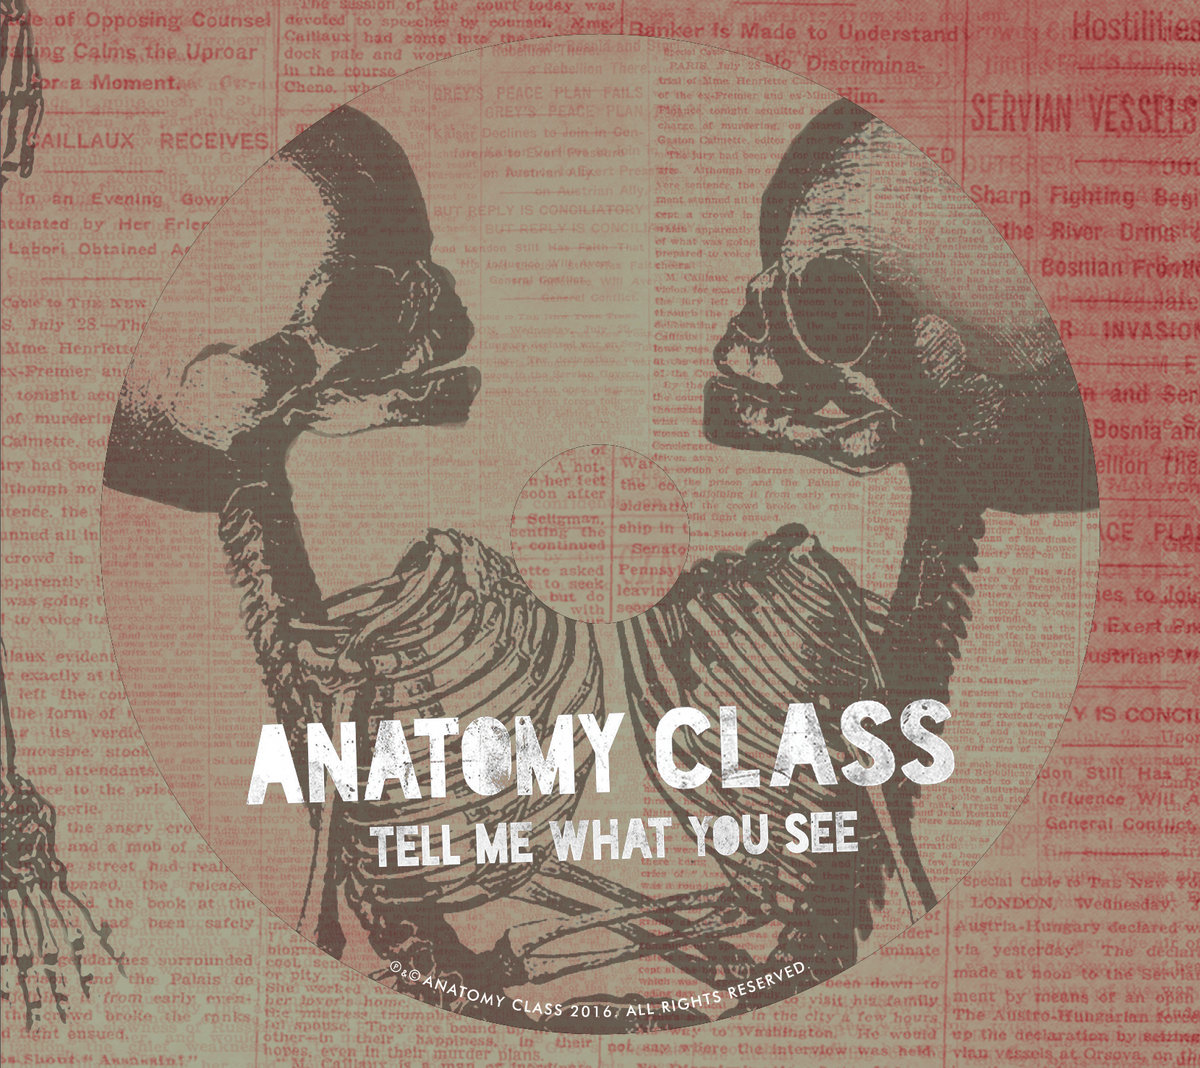 Tell Me What You See | Anatomy Class